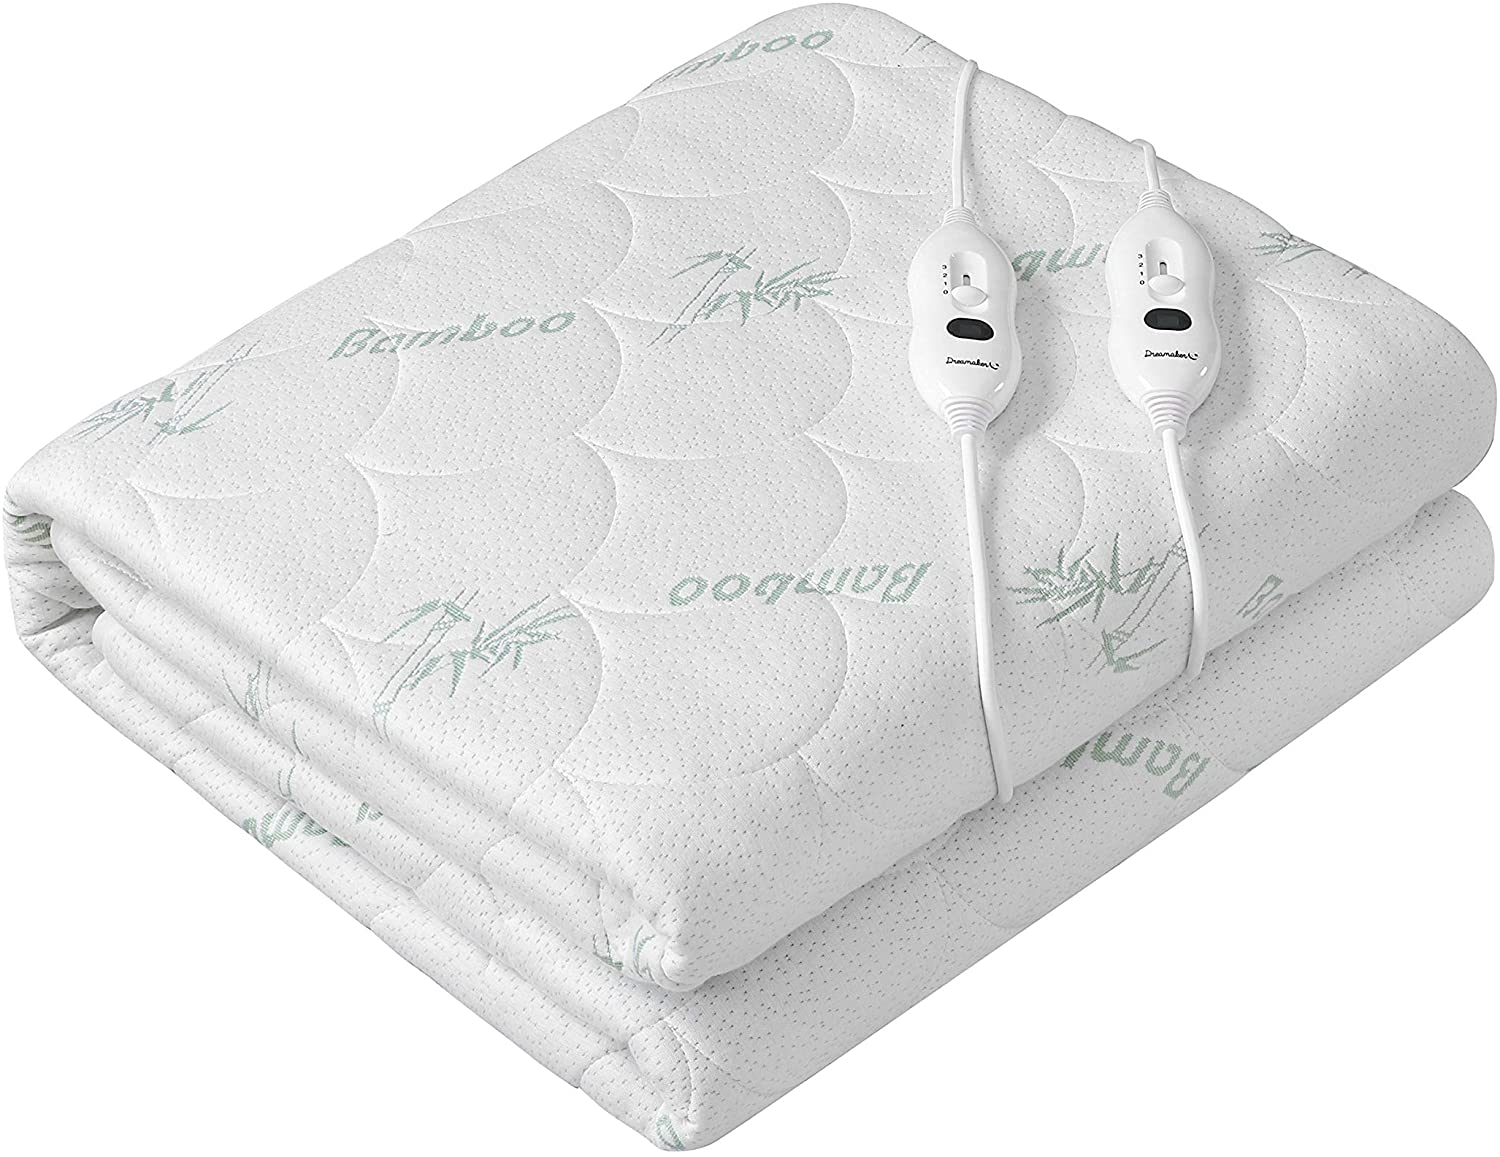 Bamboo Covered Top Electric Blanket